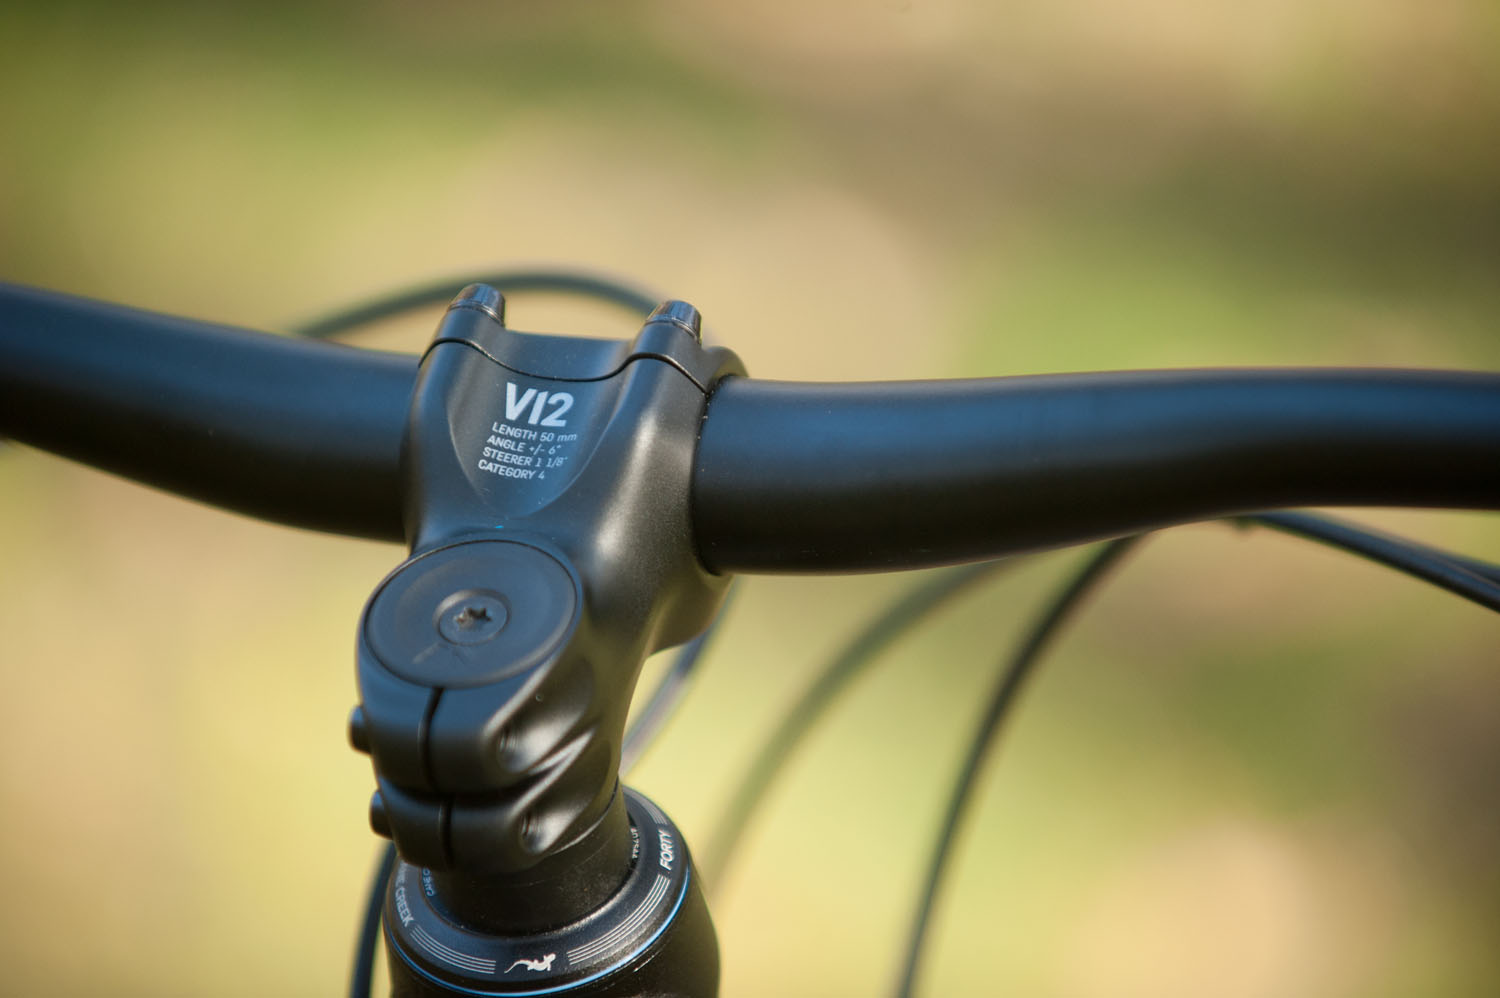 Canyon Spectral AL 7 0 EX 2015 review - The Bike List